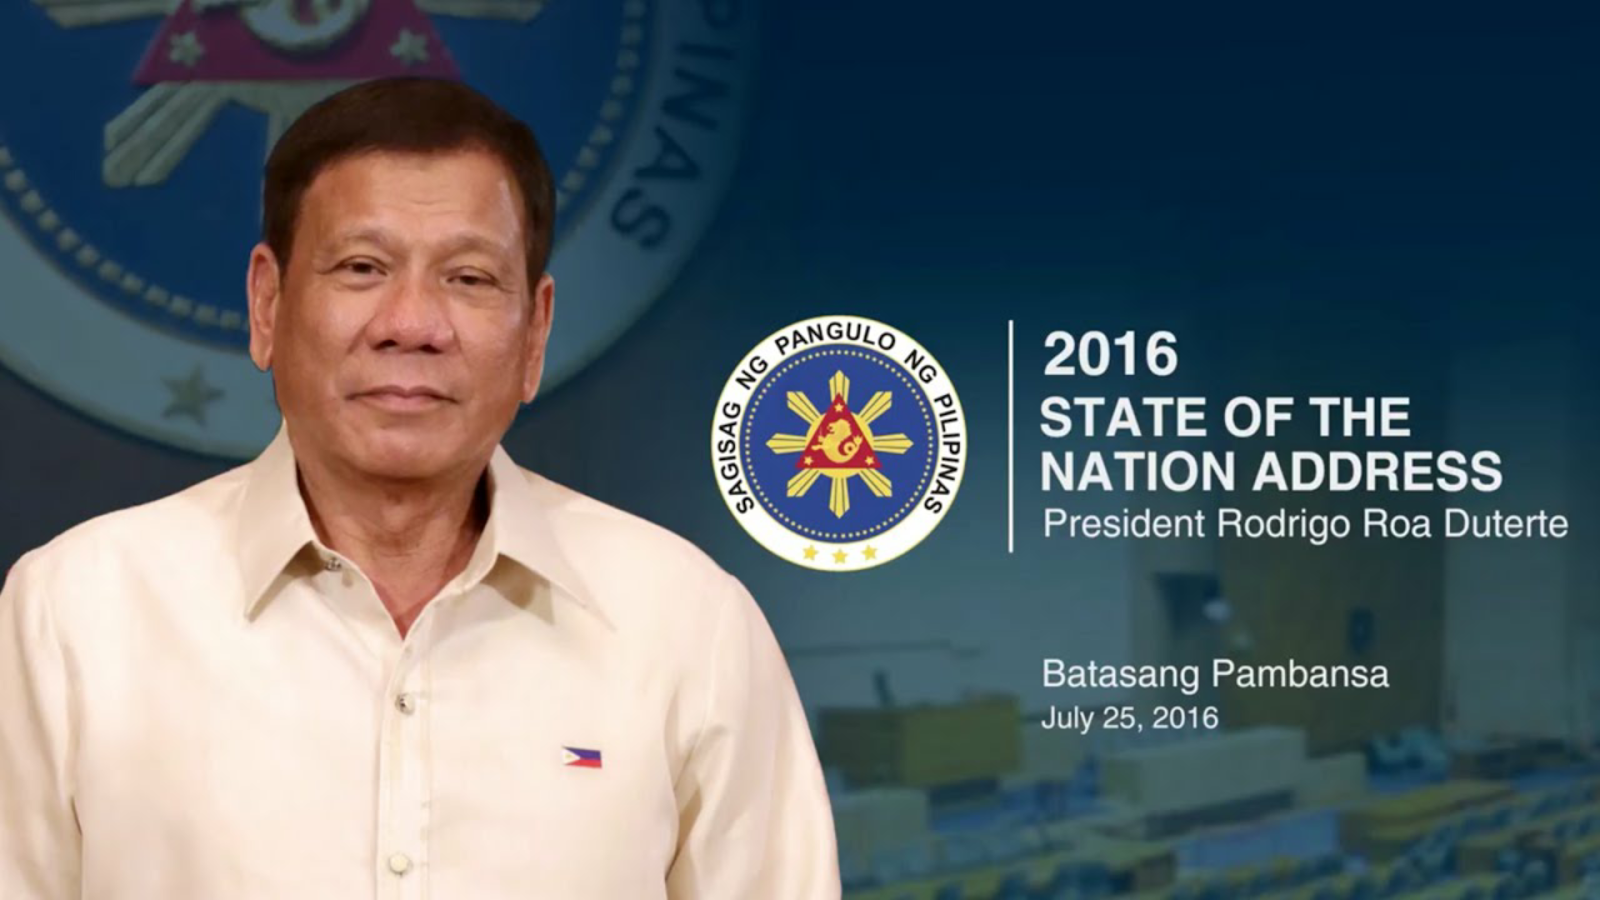 Duterte SONA 2016 speech